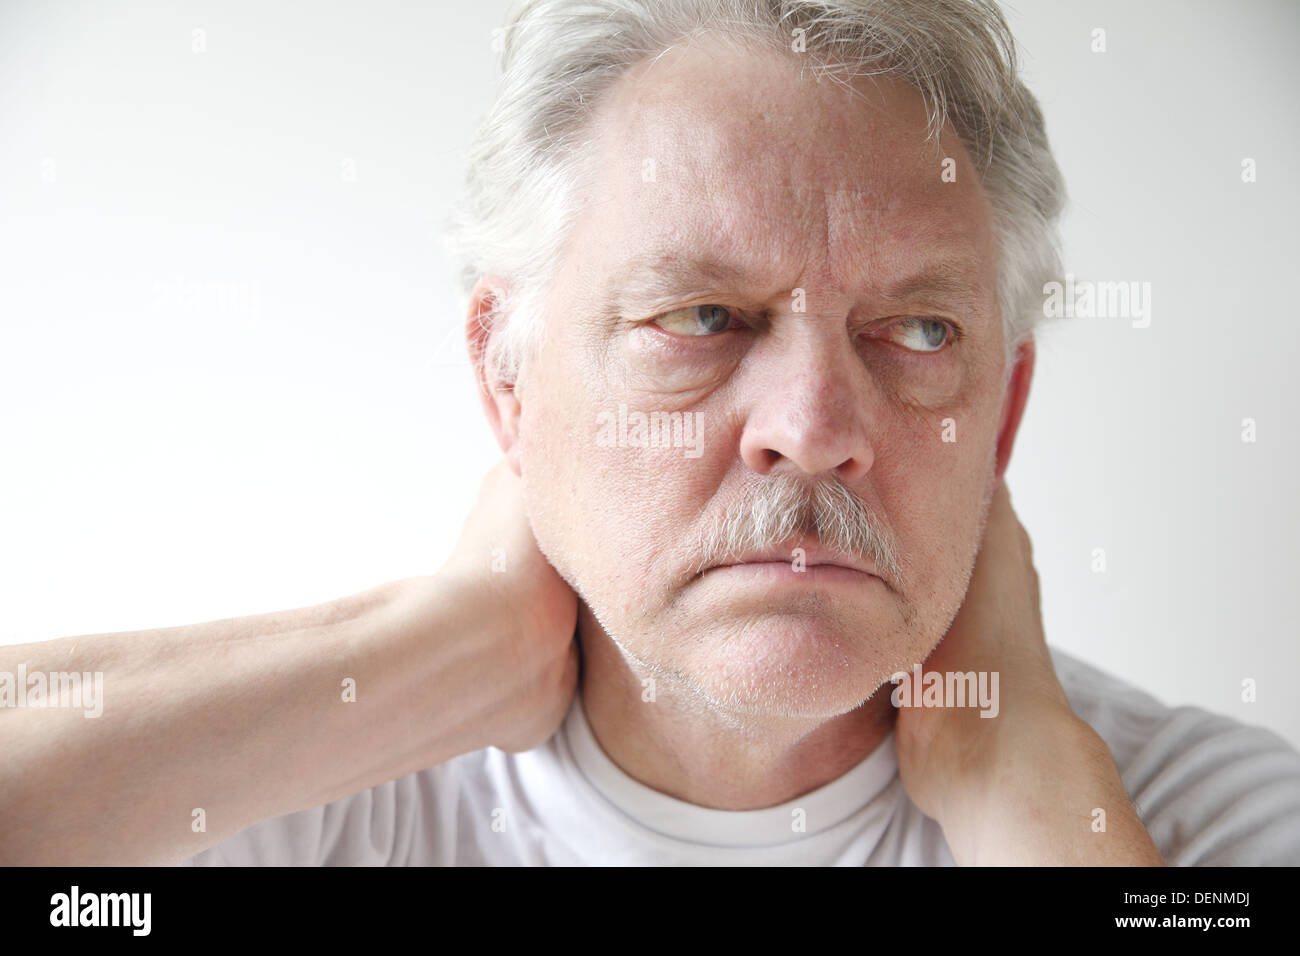 older man experiences soreness in his neck - Stock Image